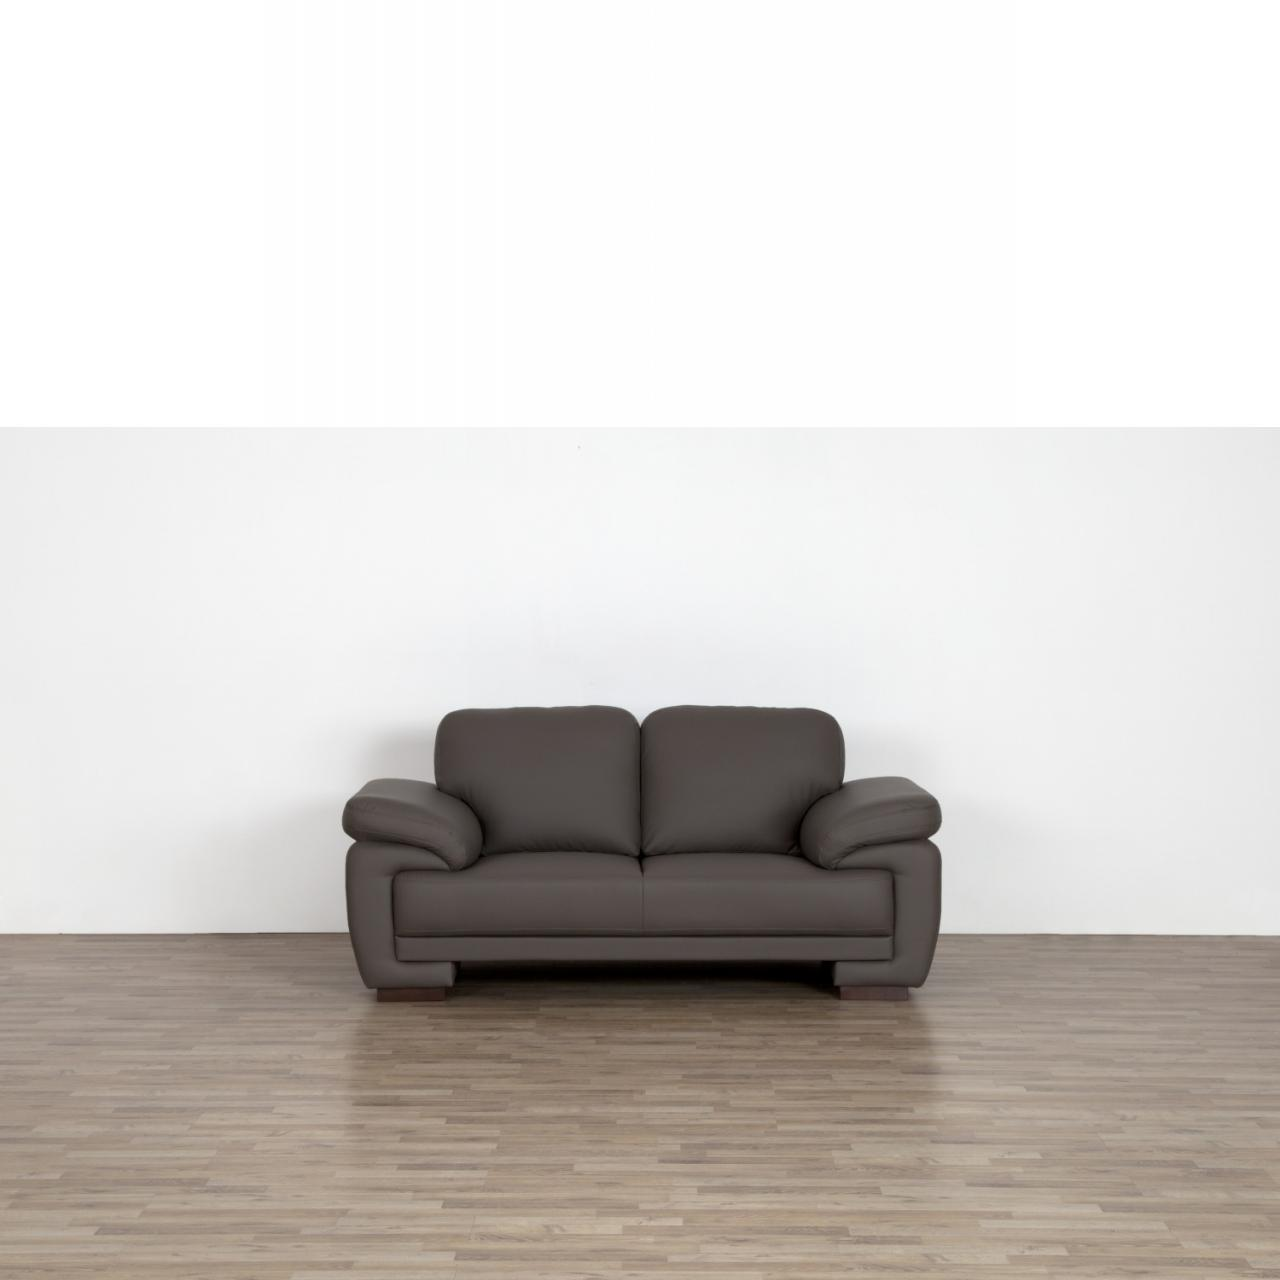 Couchtisch Xora Schlafsofa Vicky. Simple Hocker Vicky Samt Silbergrau With